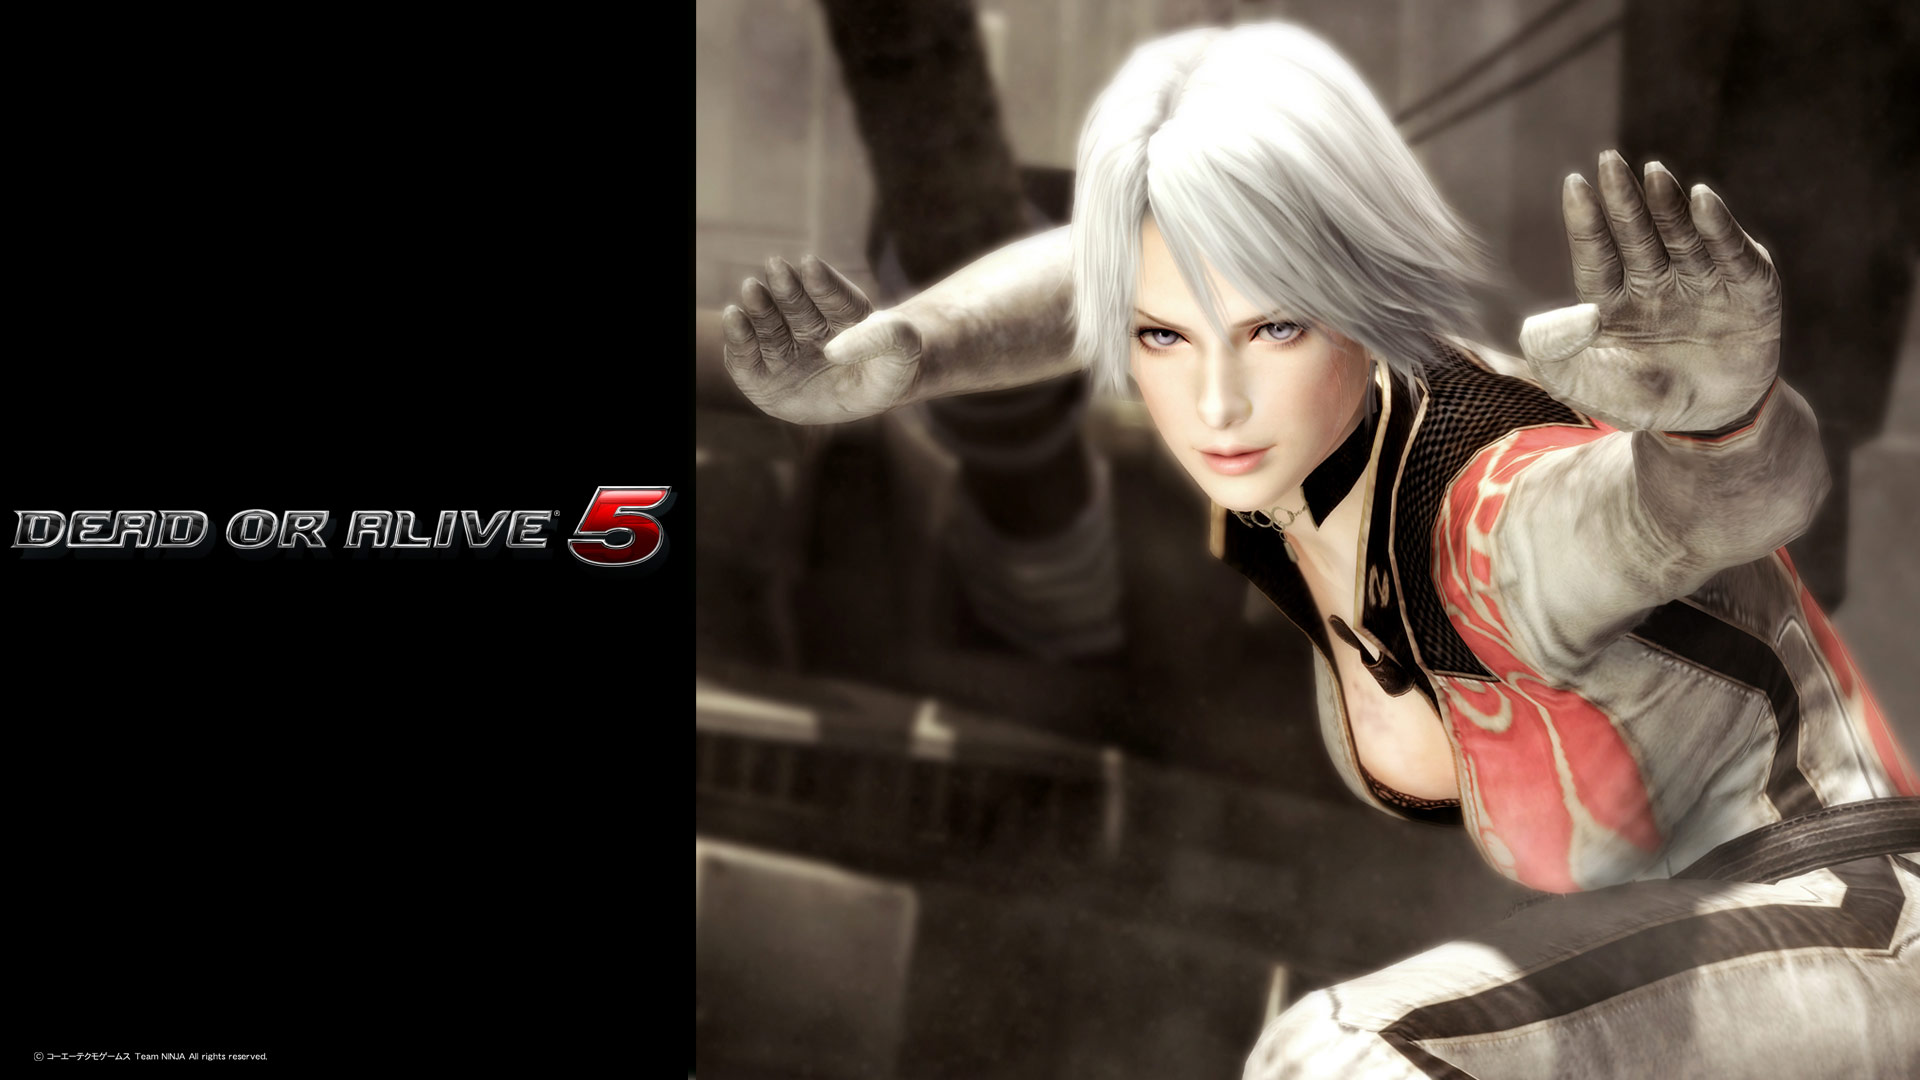 Sexy bunny costumes for Dead or Alive 5 with wallpaper image 4 1920x1080